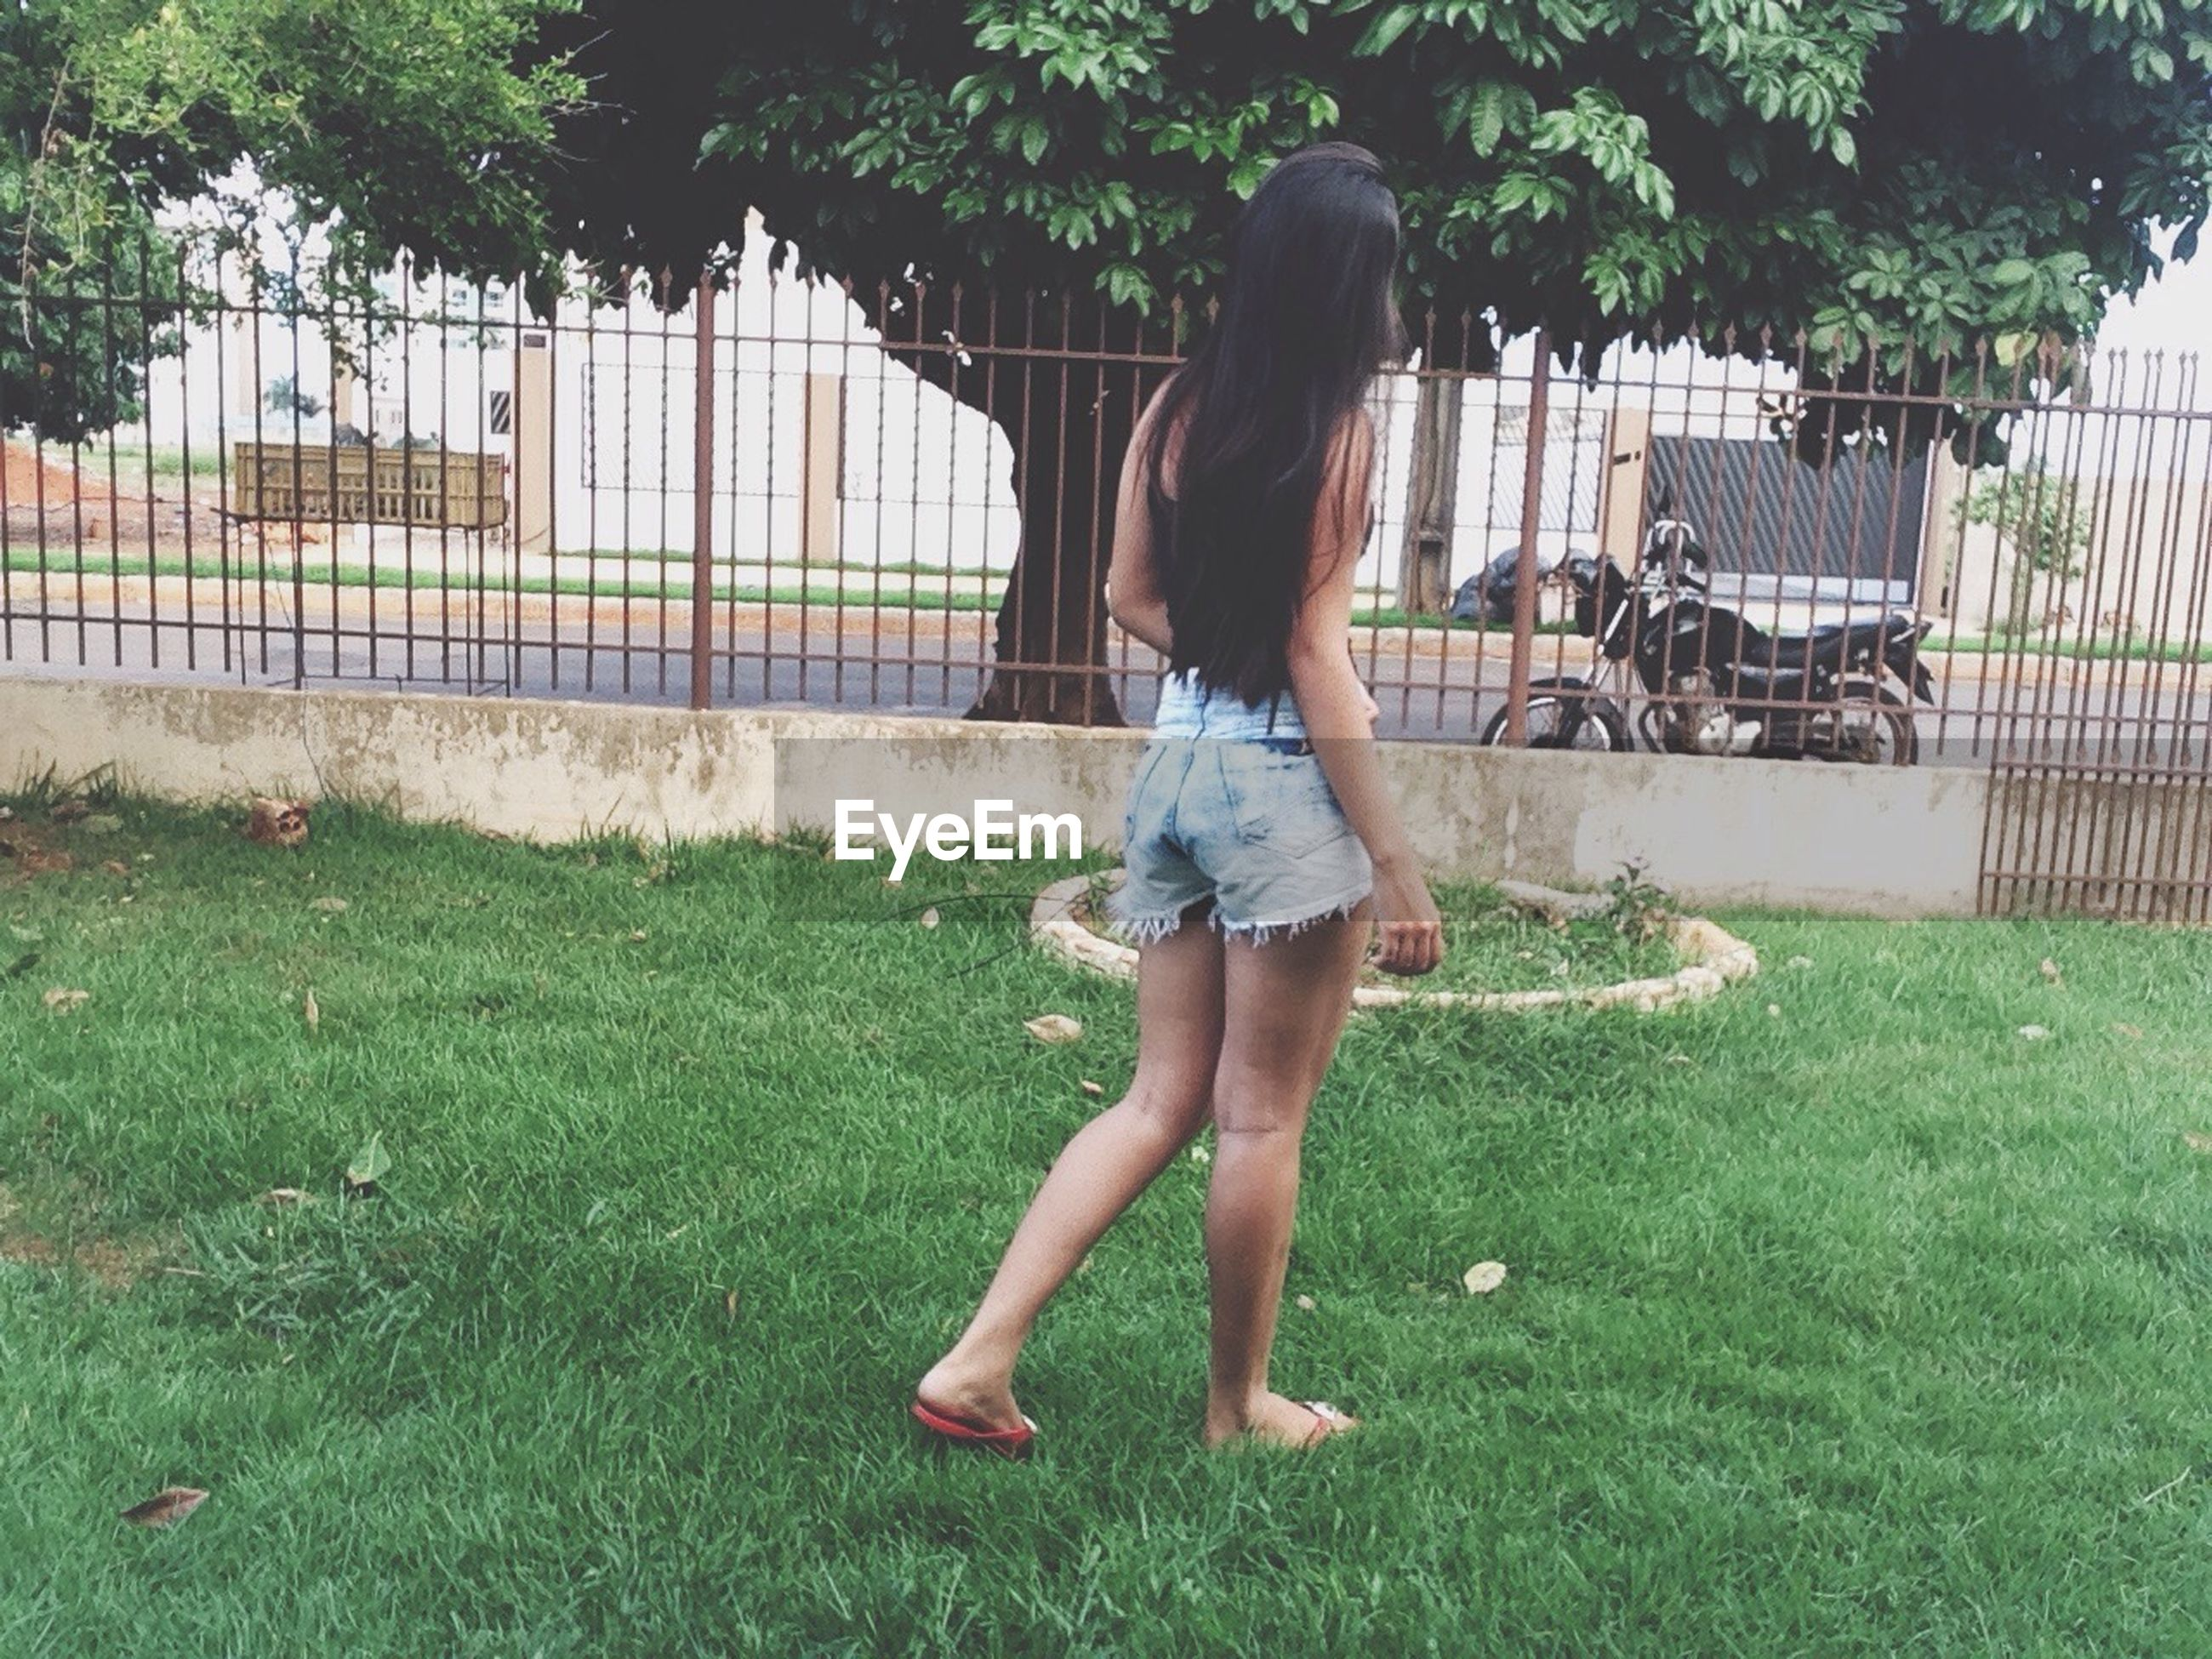 grass, full length, lifestyles, childhood, casual clothing, leisure activity, park - man made space, grassy, elementary age, girls, playing, person, standing, rear view, green color, field, lawn, boys